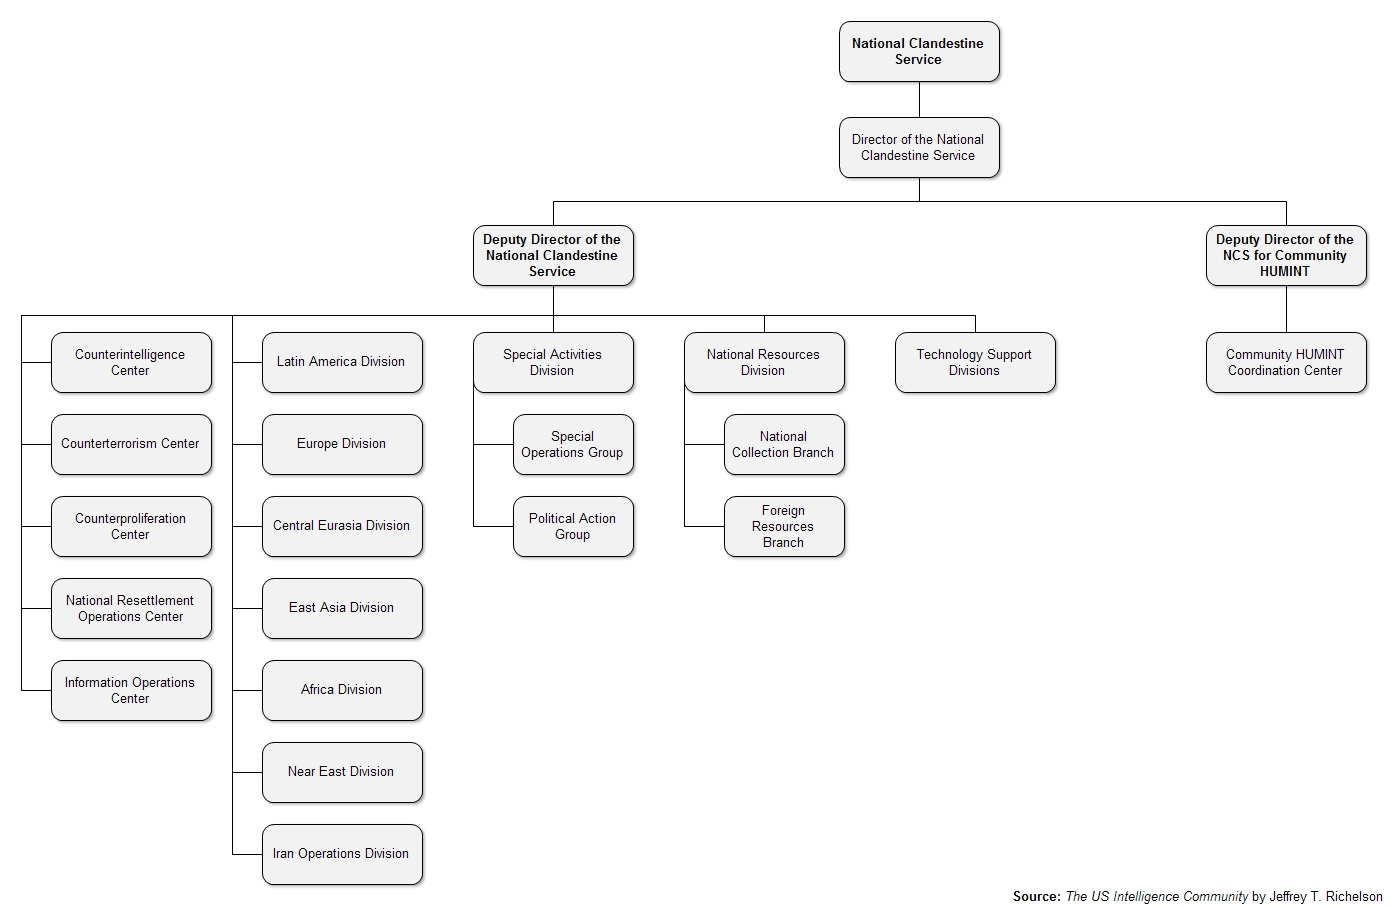 Creating An Organizational Chart In Word: Organizational Chart of the CIA7s National Clandestine ,Chart